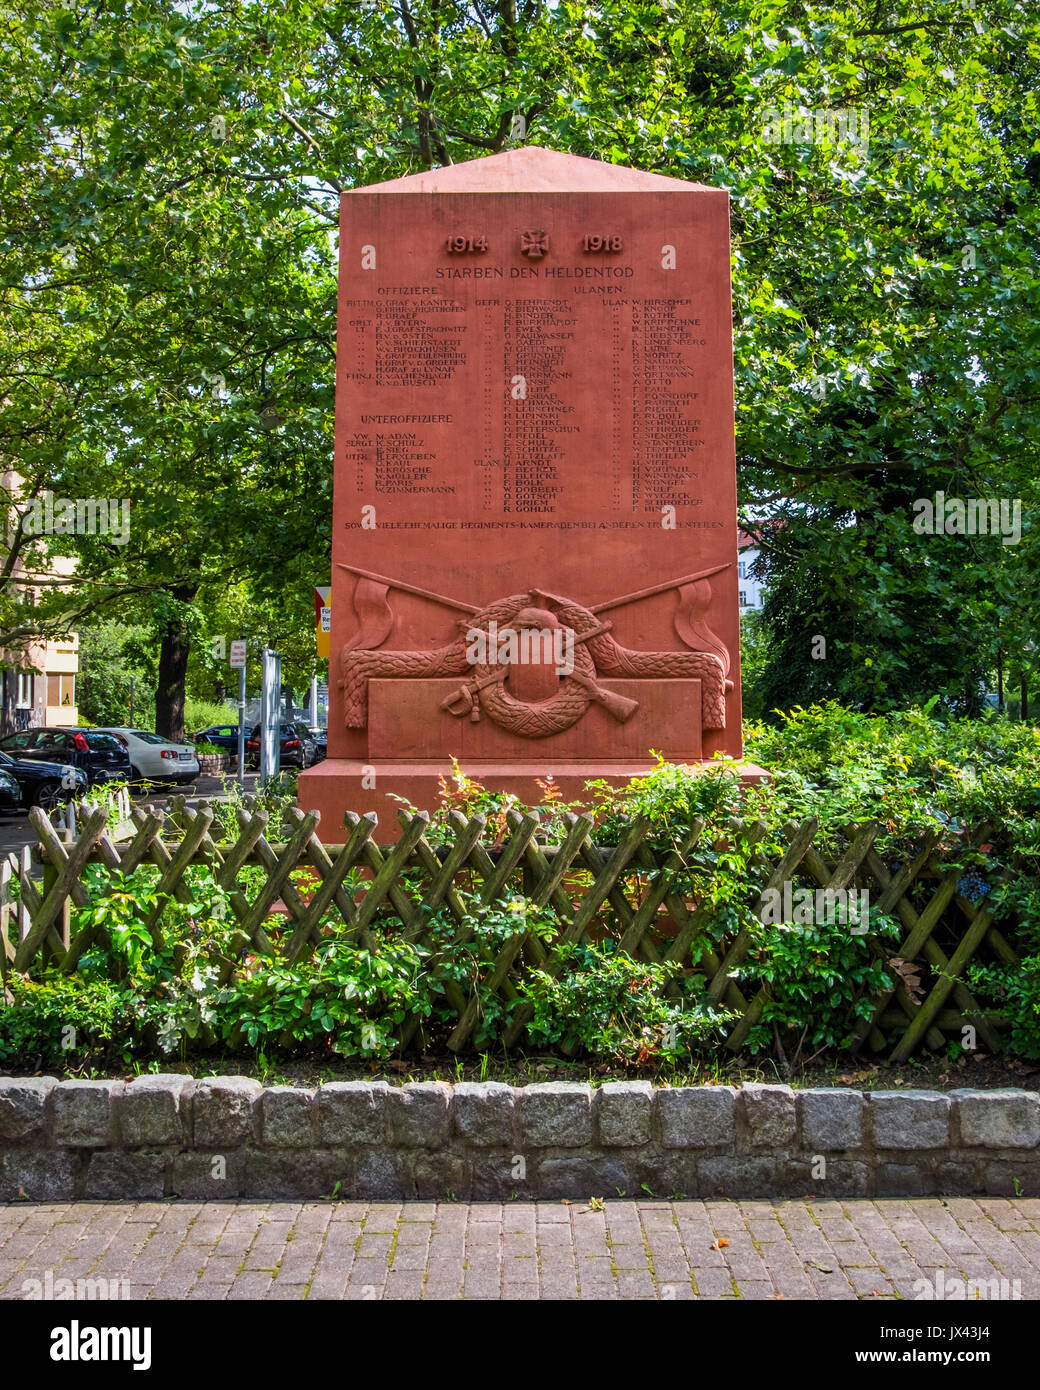 Berlin Moabit.The Regiment war memorial unveiled in 1923.World War 1 memorial with names of fallen soldiers - Stock Image